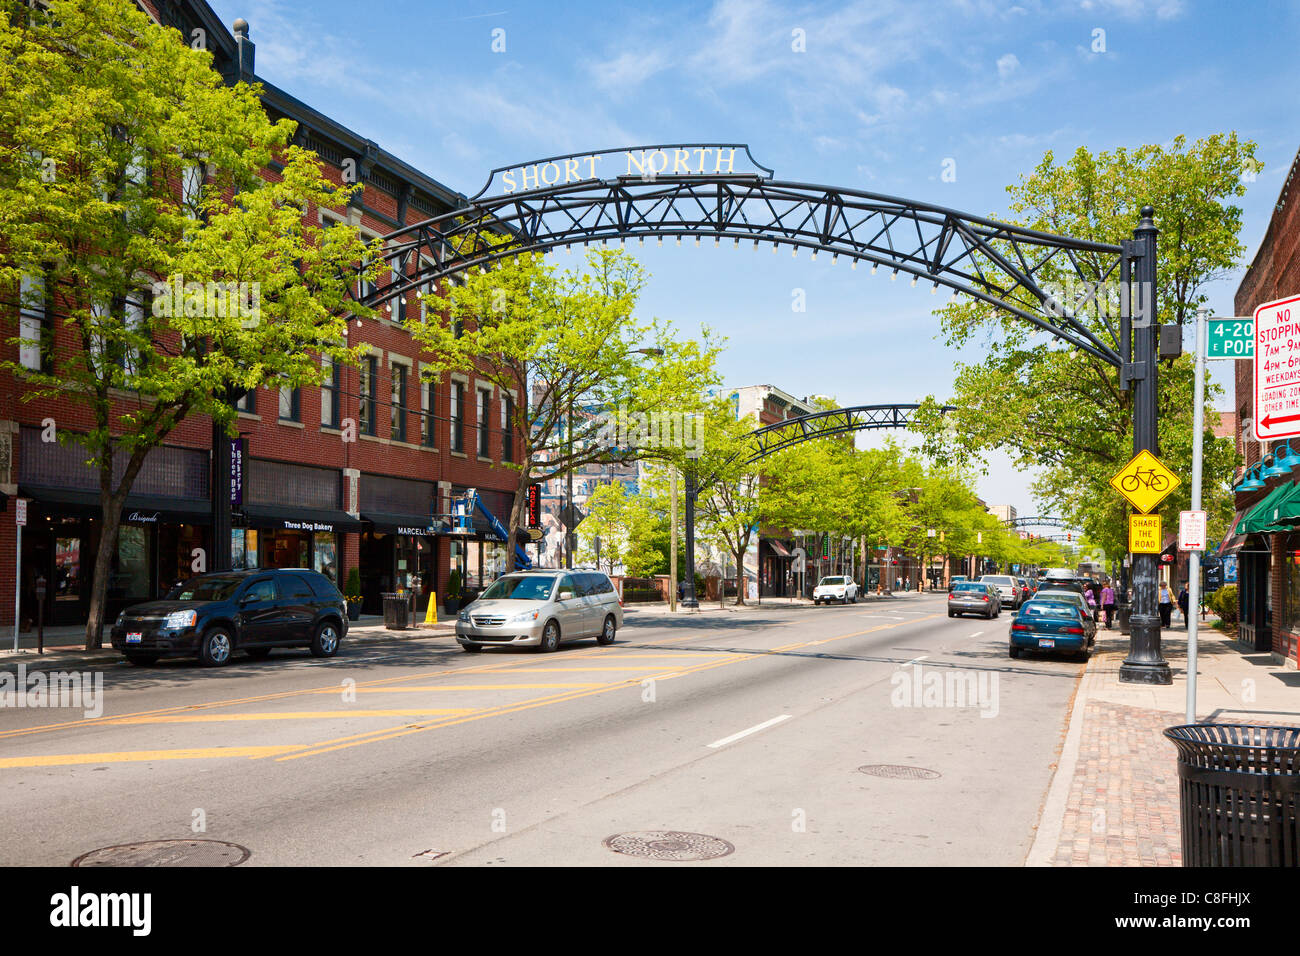 metal-arches-over-high-street-in-the-sho